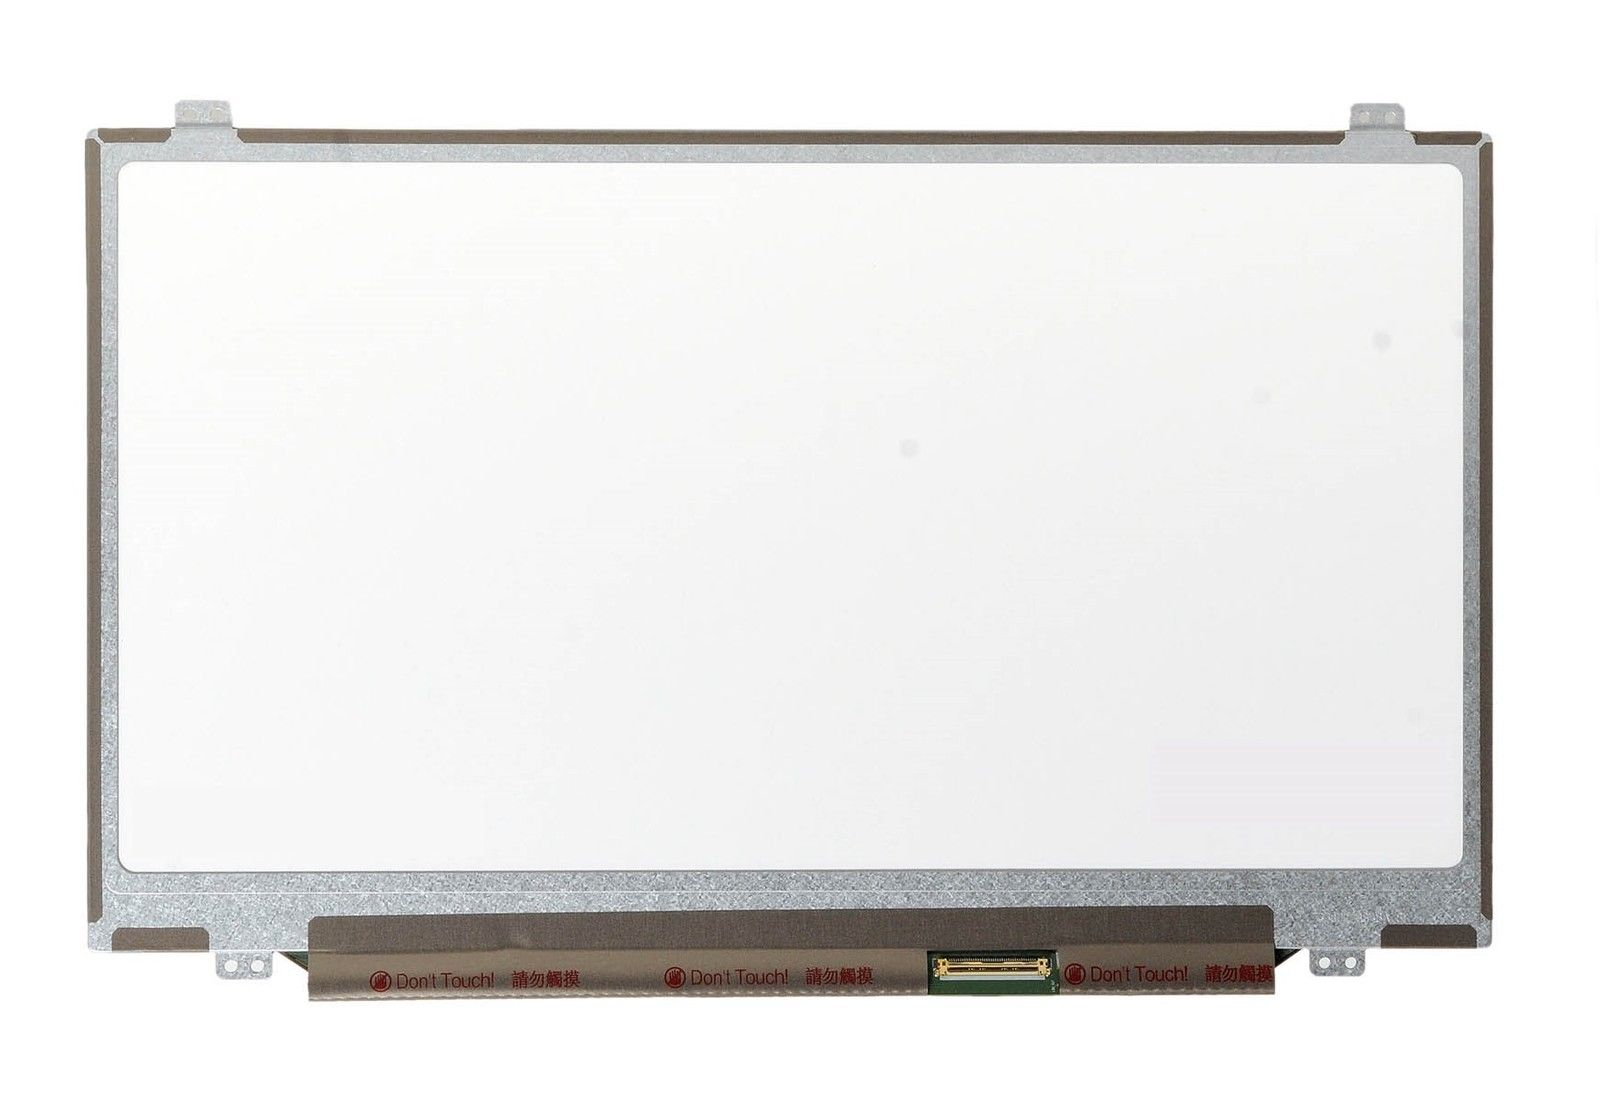 For Asus X401 X401A X401U X401A-RBL4 New 14.0 HD Slim LED LCD Screen Display [special price] new laptop battery for asus x301 x301a x301u x401 x401a x401u x501 x501a x501u a31 x401 a41 x401 free shipping